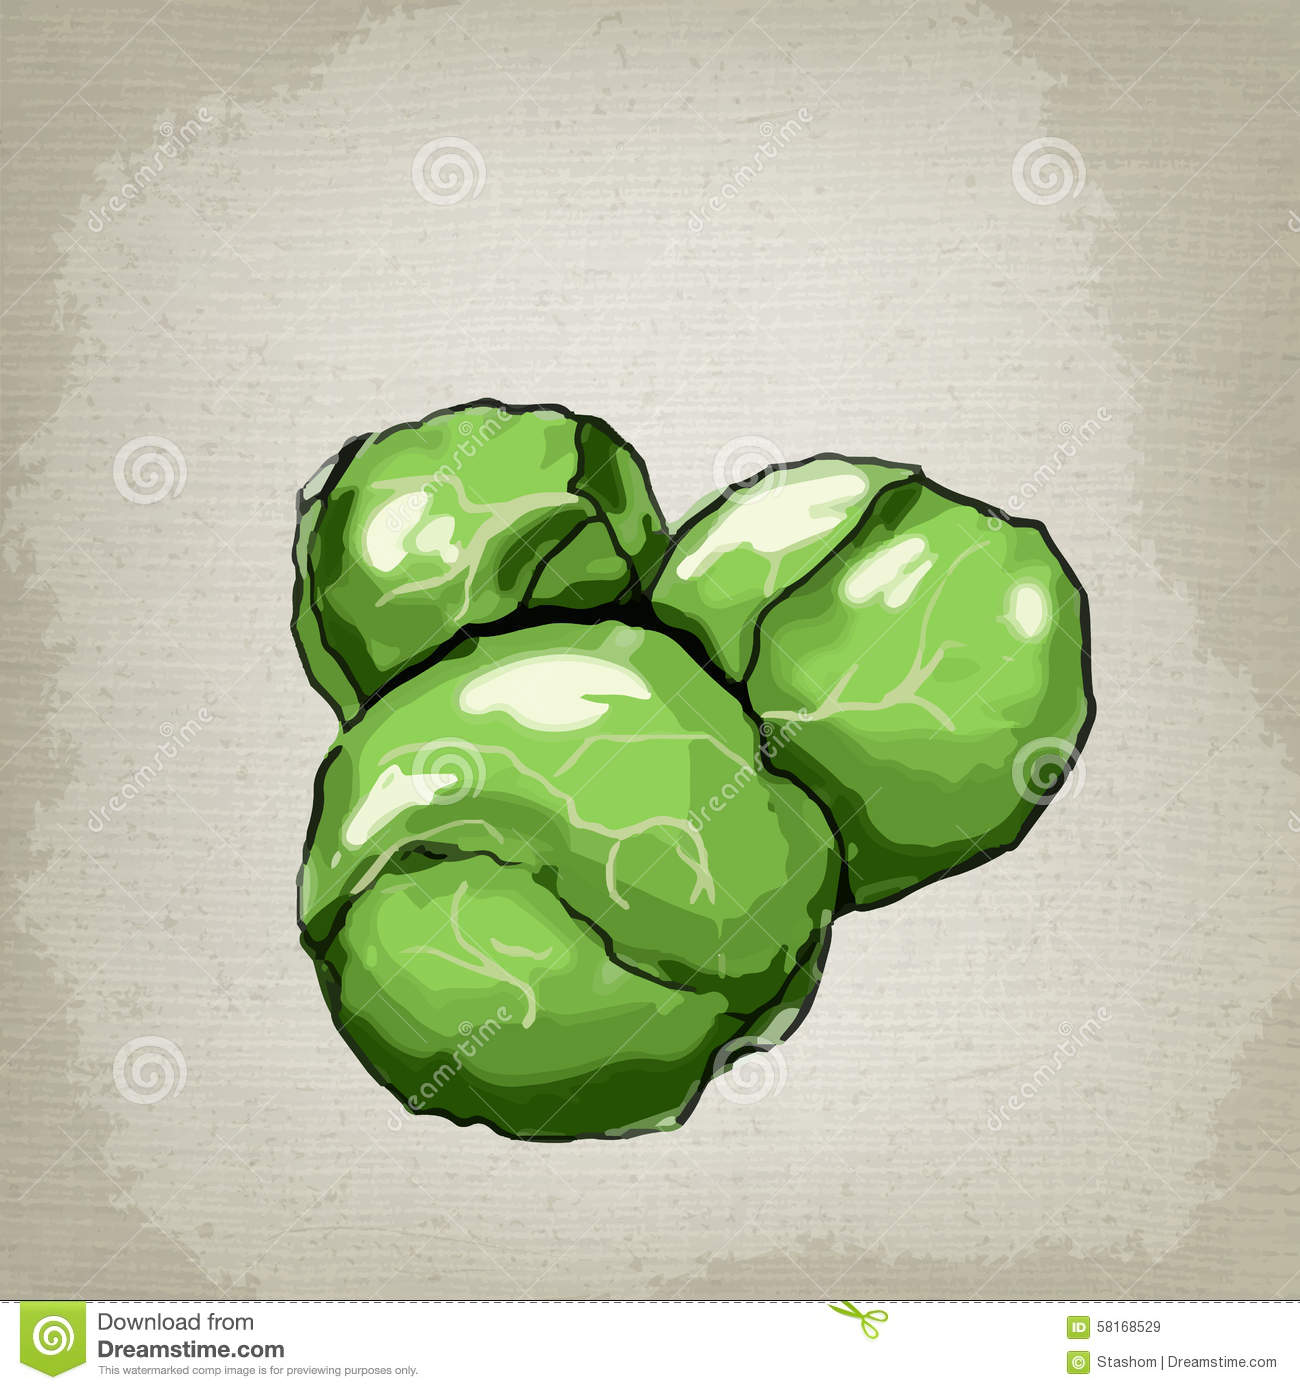 Brussels Sprouts Vector Illustration. Stock Vector.